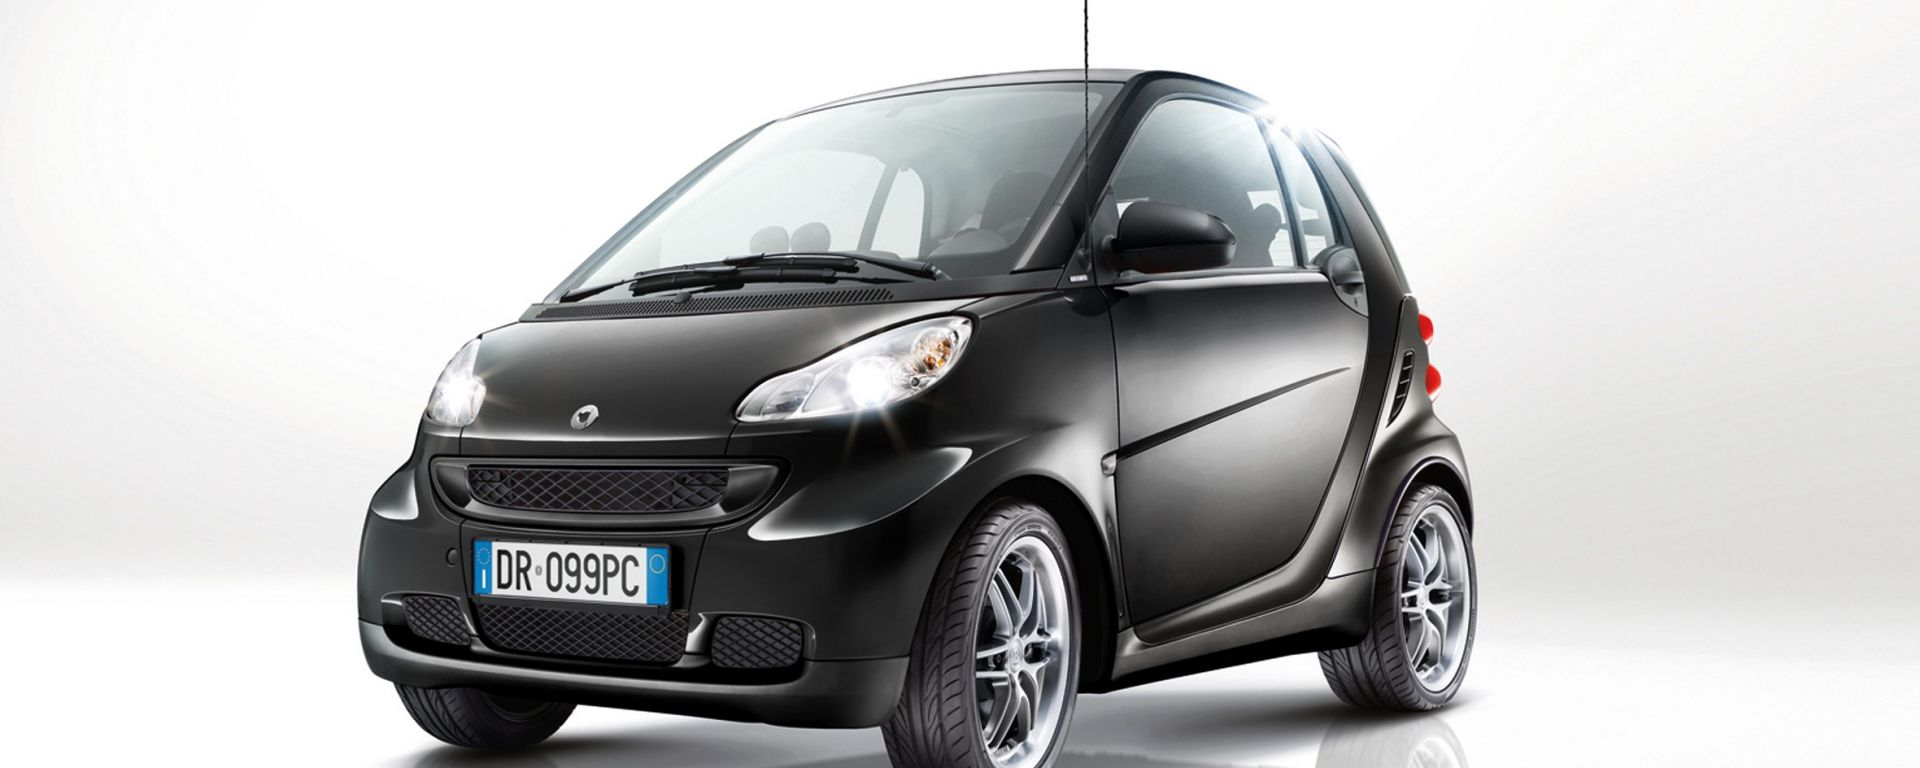 Smart fortwo cdi teen